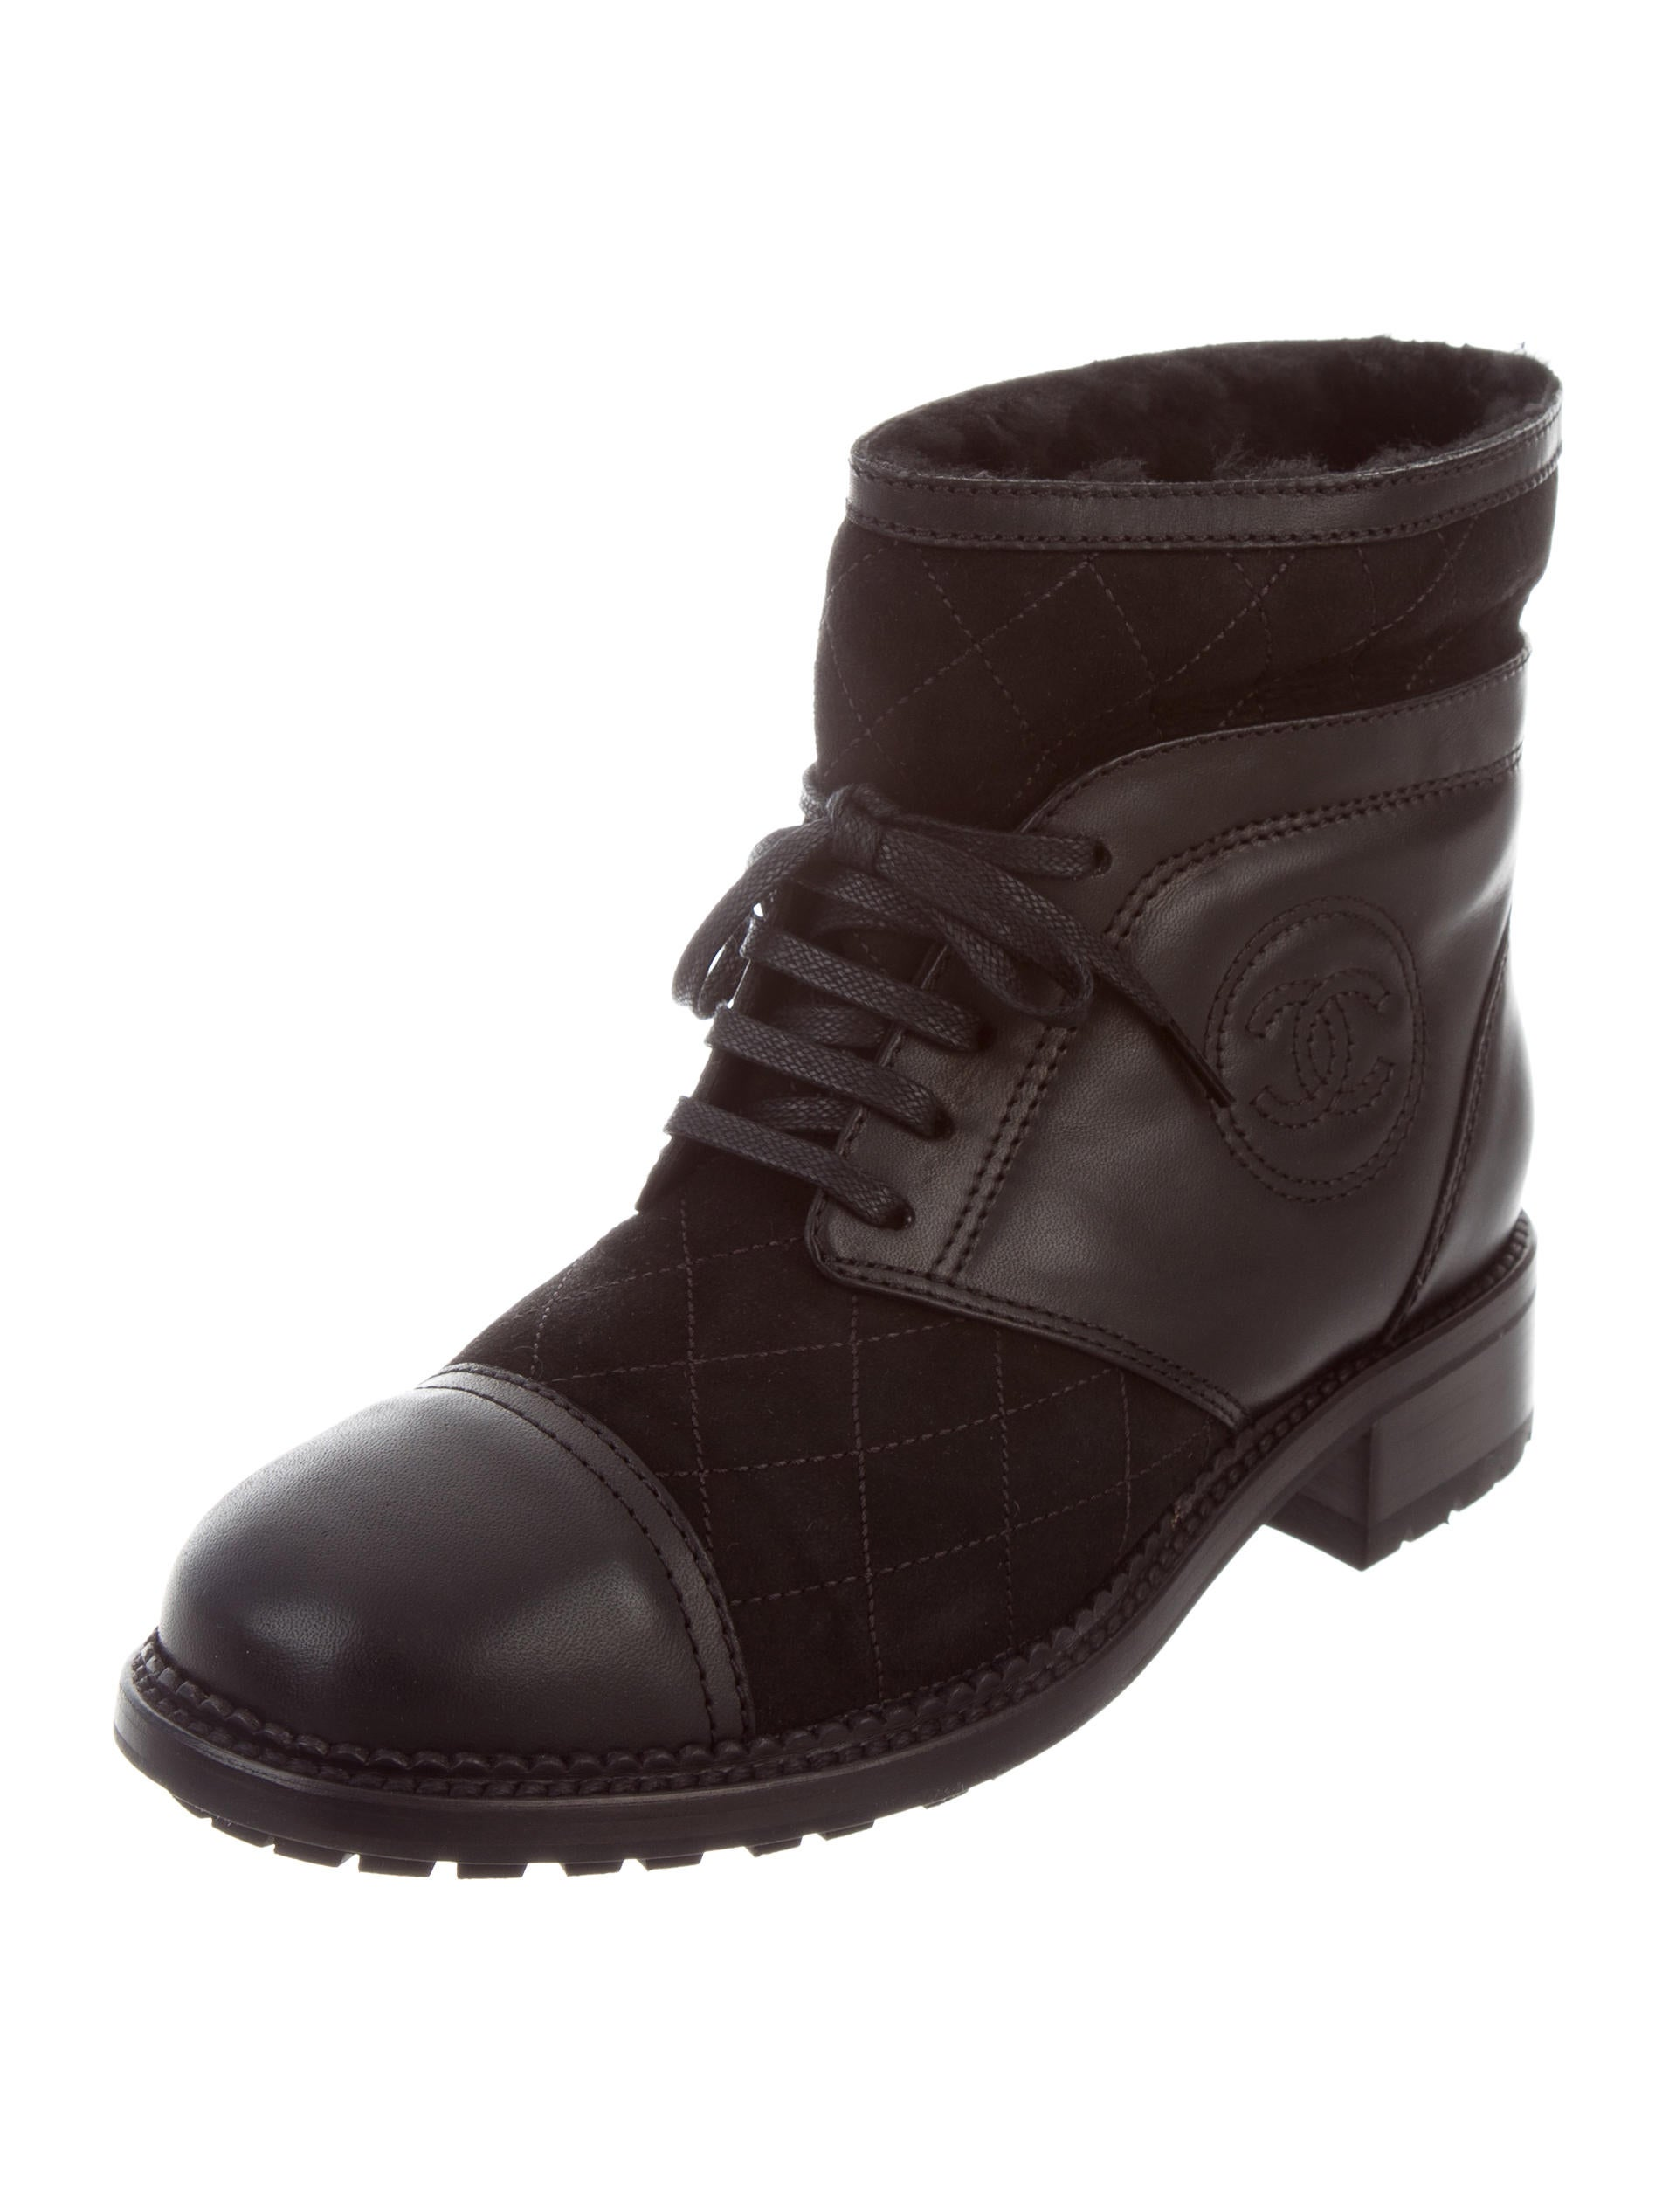 chanel quilted cc ankle boots w tags shoes cha198712